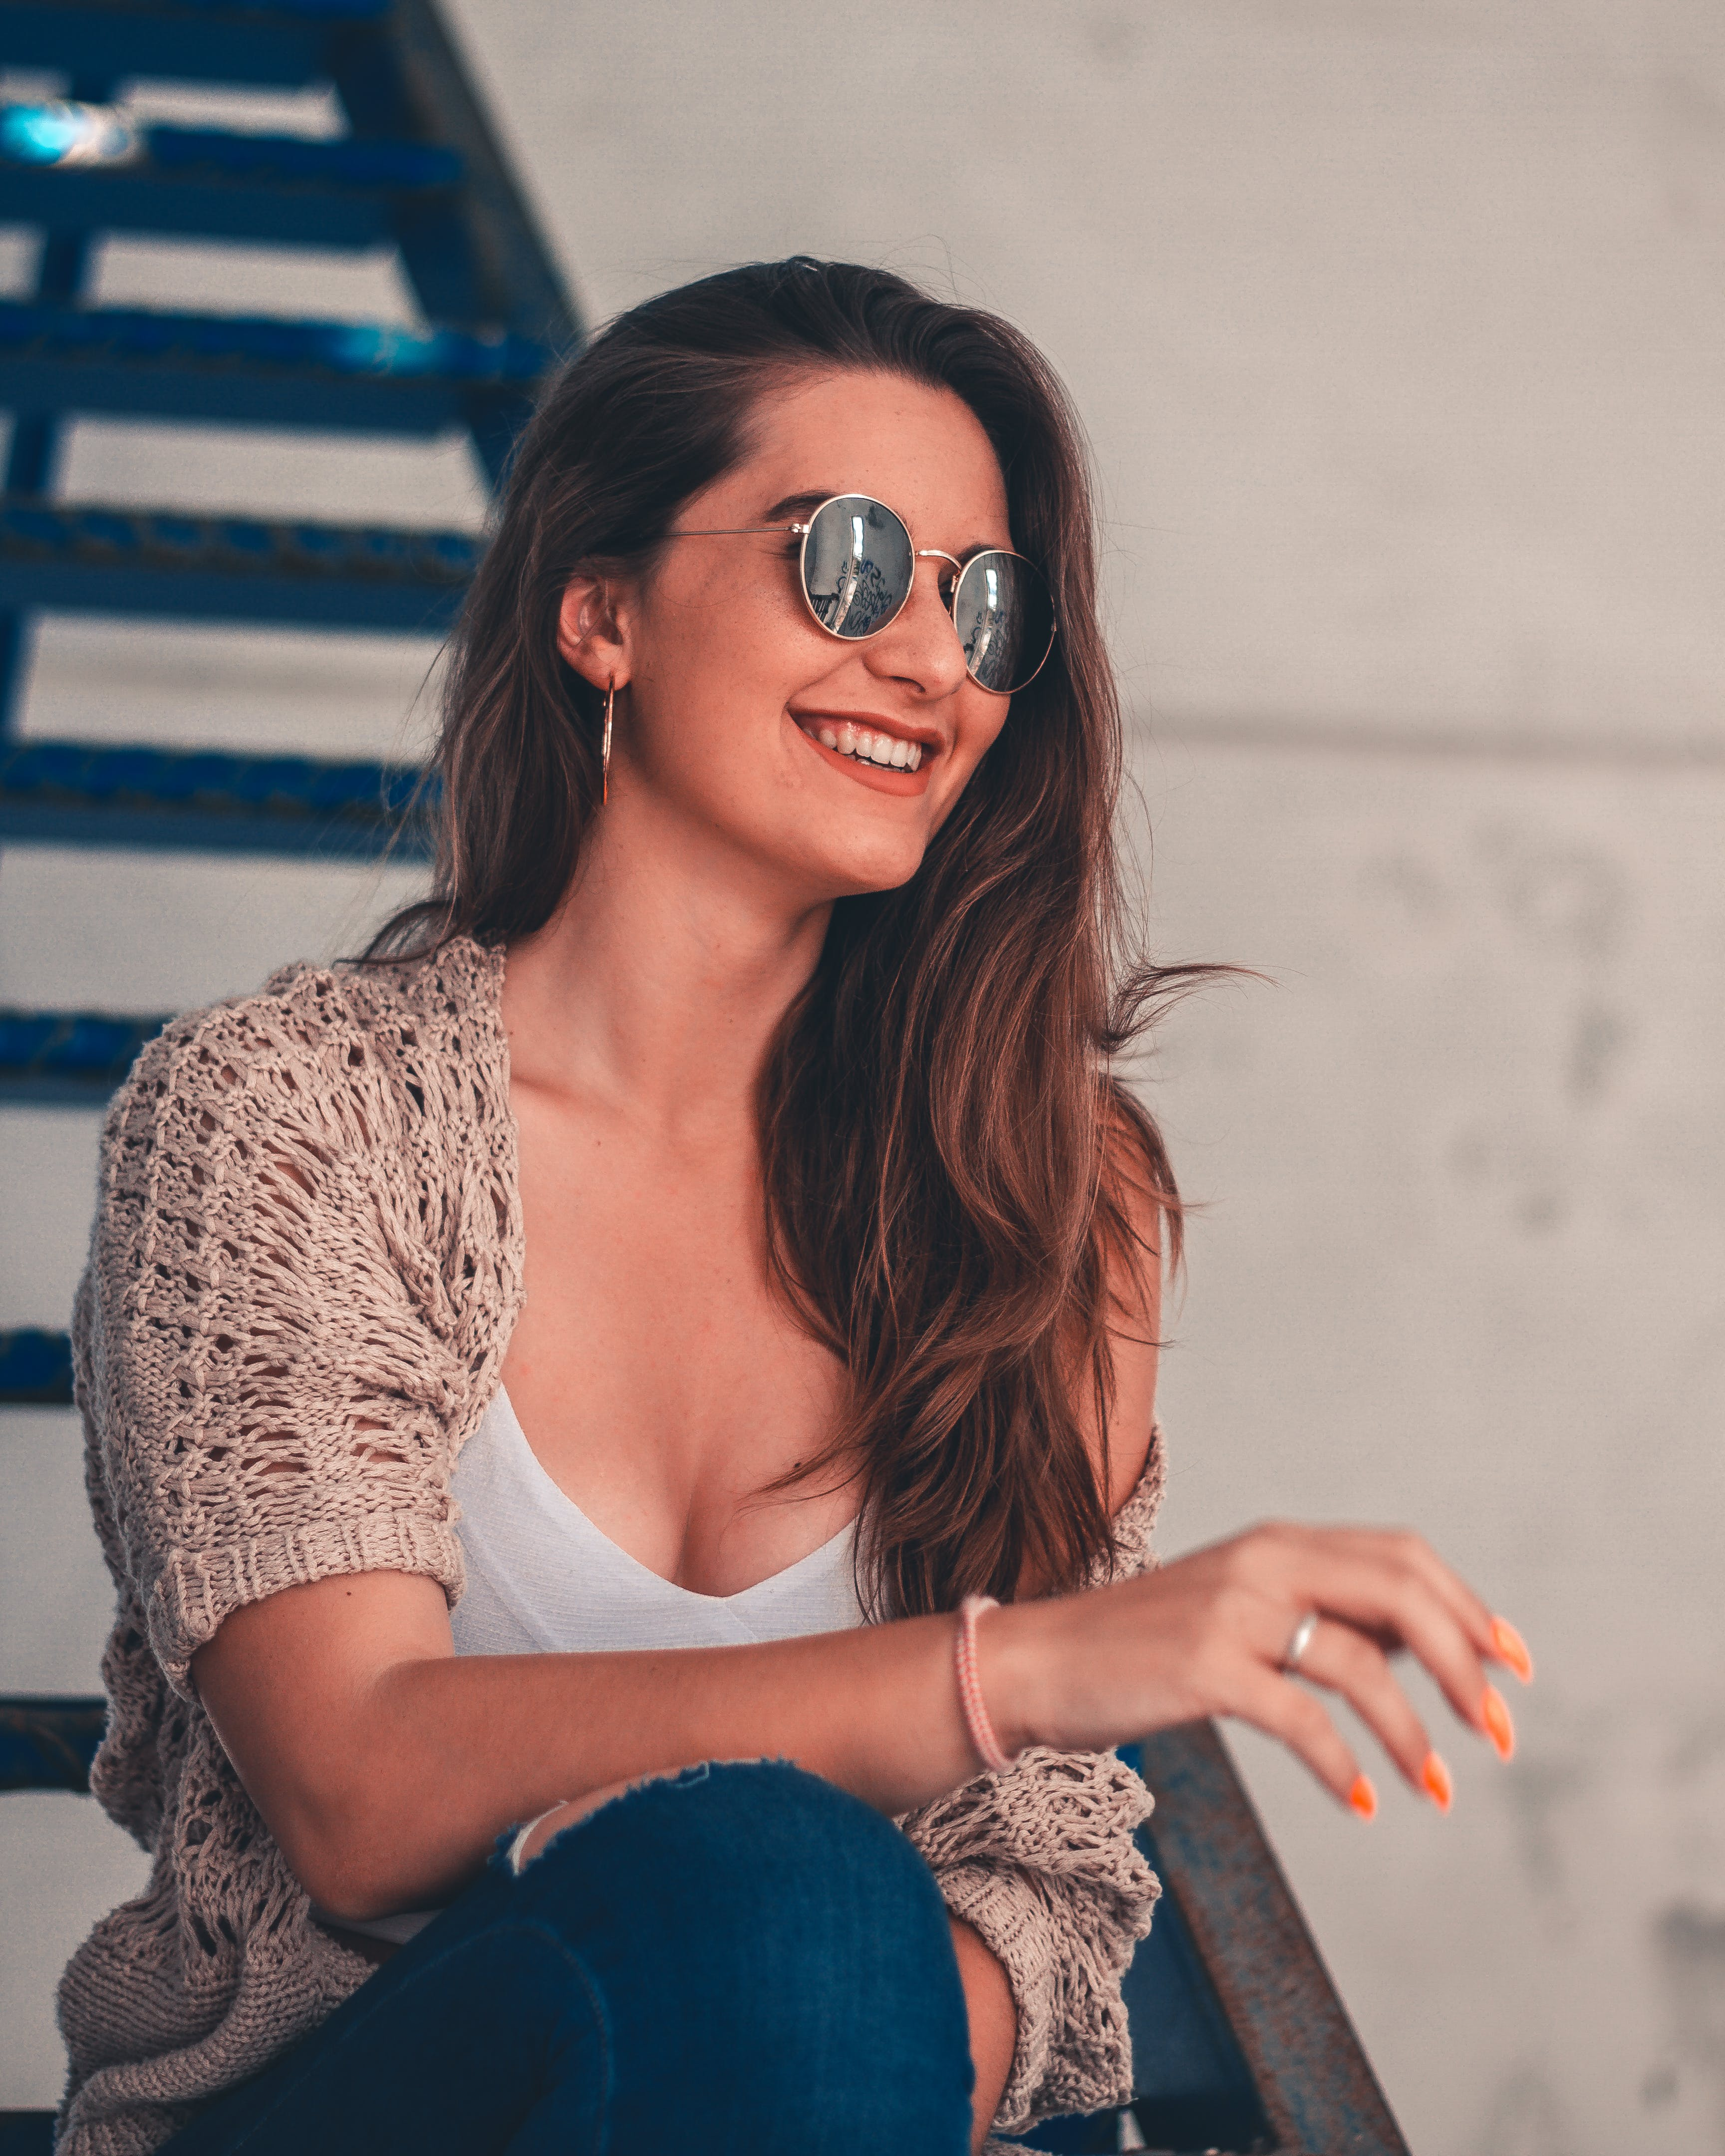 Free stock photo of stairs, fashion, person, sunglasses